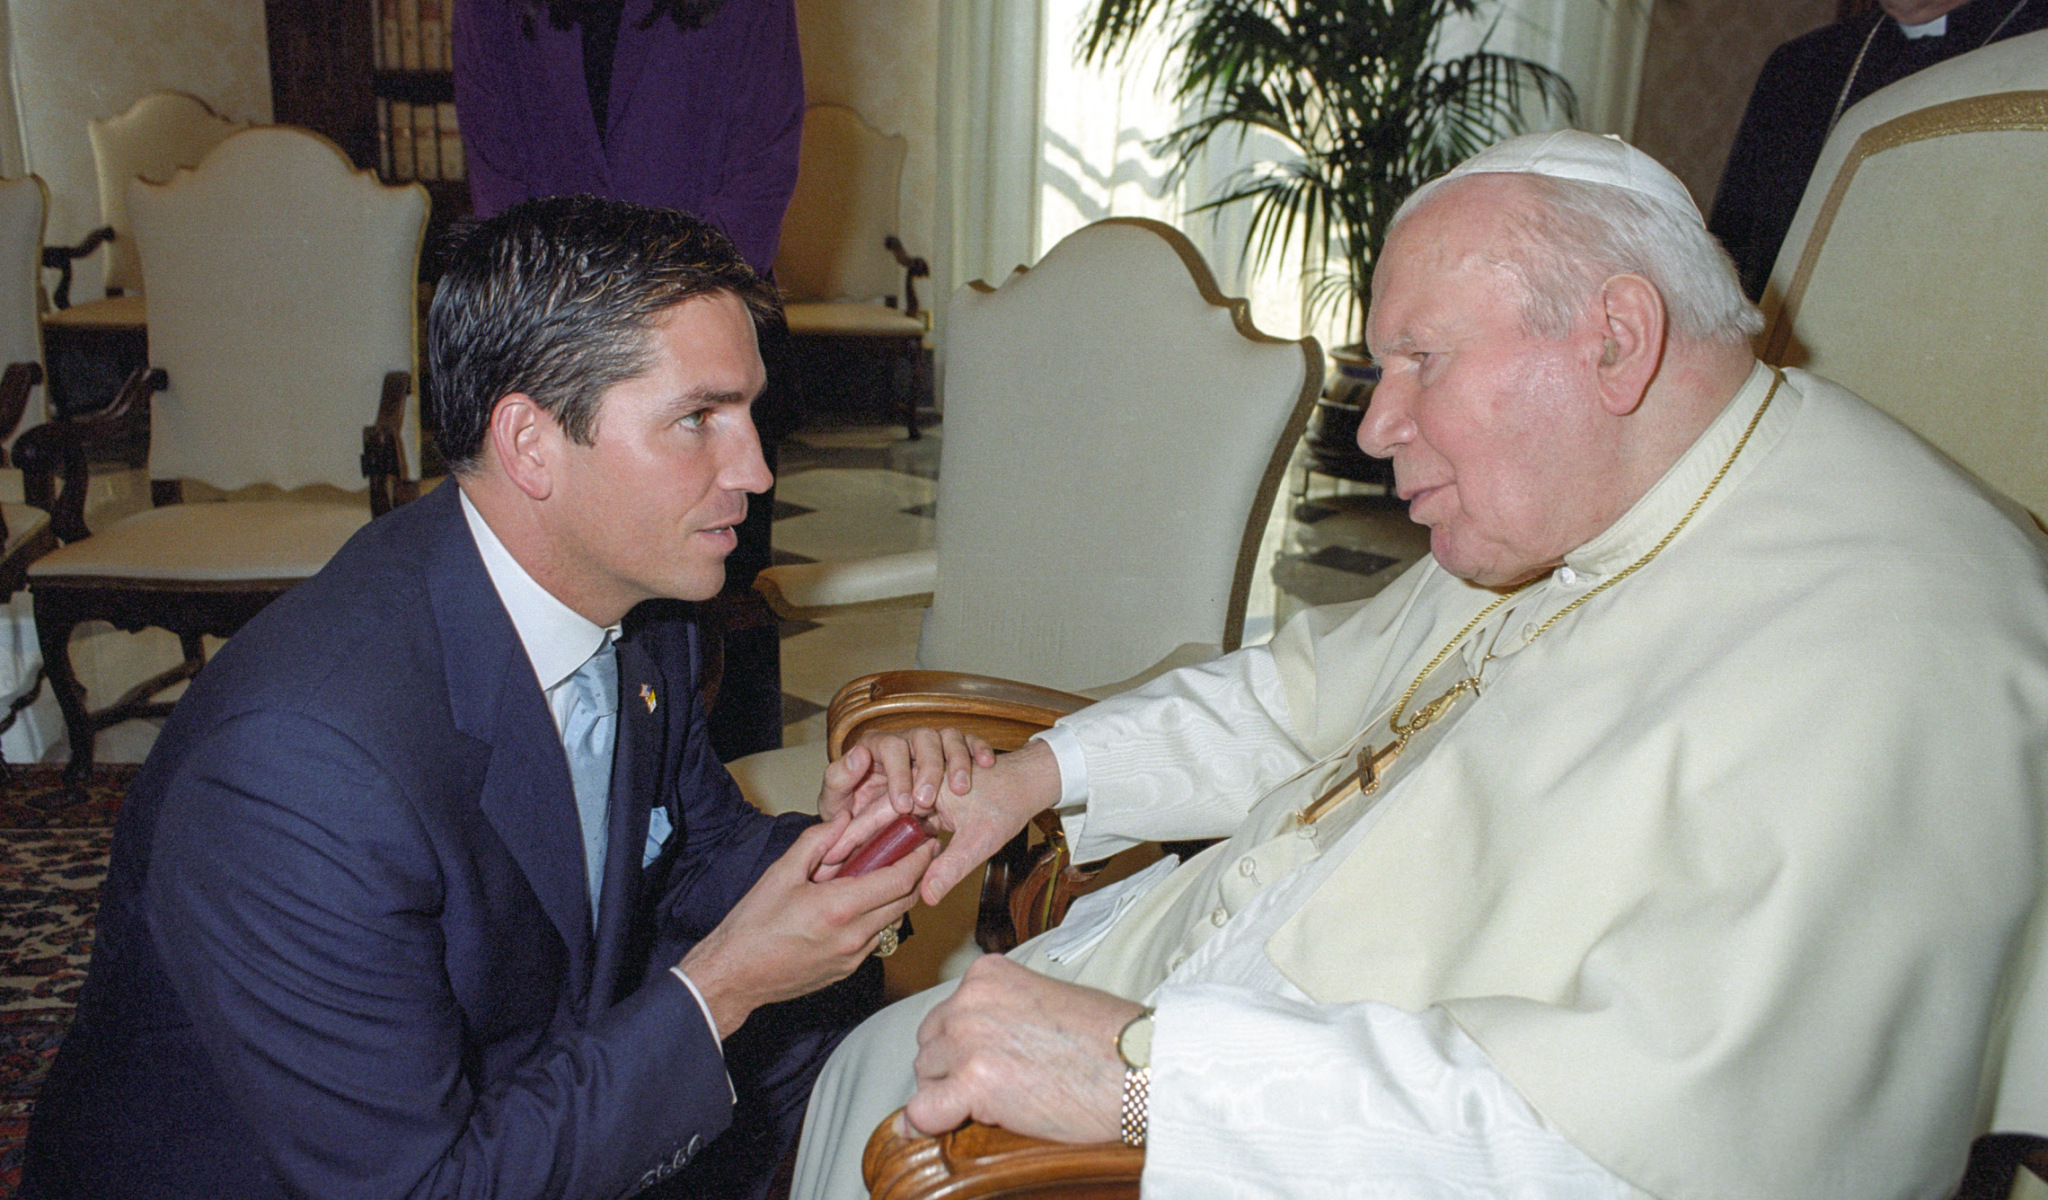 March 15 2004 : Pope John Paul II meets the actor Jim Caviezel in the Vatican. (Jim Caviezel is an American actor, best known for portraying Jesus Christ in the 2004 film The Passion of the Christ) EDITORIAL USE ONLY. NOT FOR SALE FOR MARKETING OR ADVERTISING CAMPAIGNS.